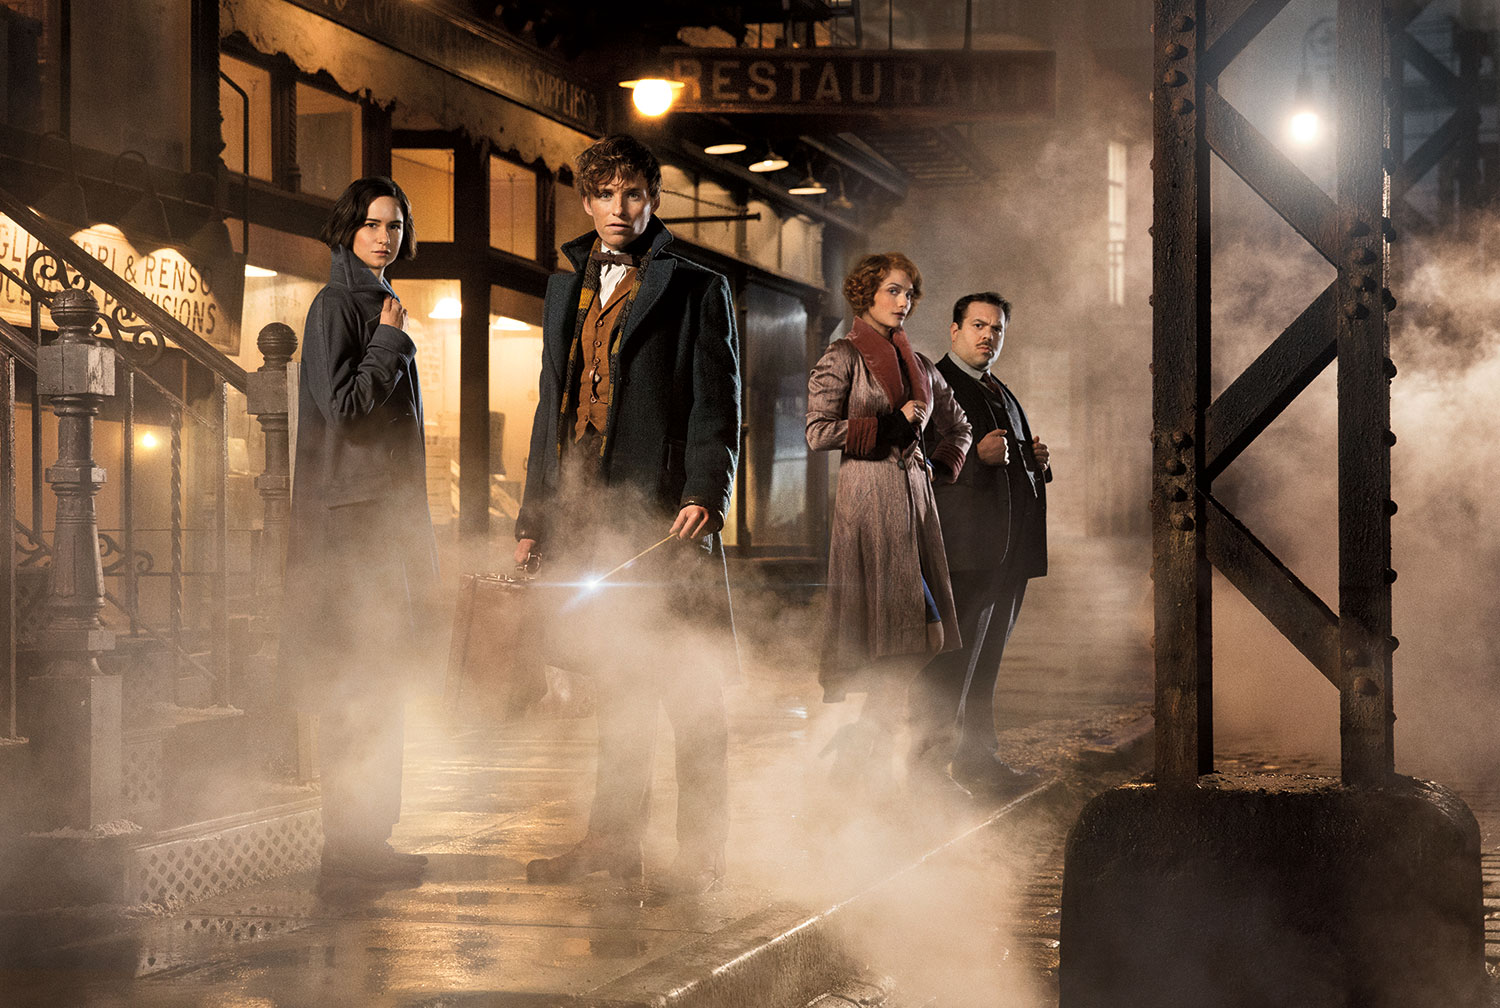 """Fantastic Beasts and Where to Find Them"" stars (from left) Katherine Waterston as Porpentina Goldstein, Eddie Redmayne as Newt Scamander, Alison Sudol as Queenie, and Dan Fogler as Jacob Kowalski.  (Courtesy of Warner Bros. Pictures)"